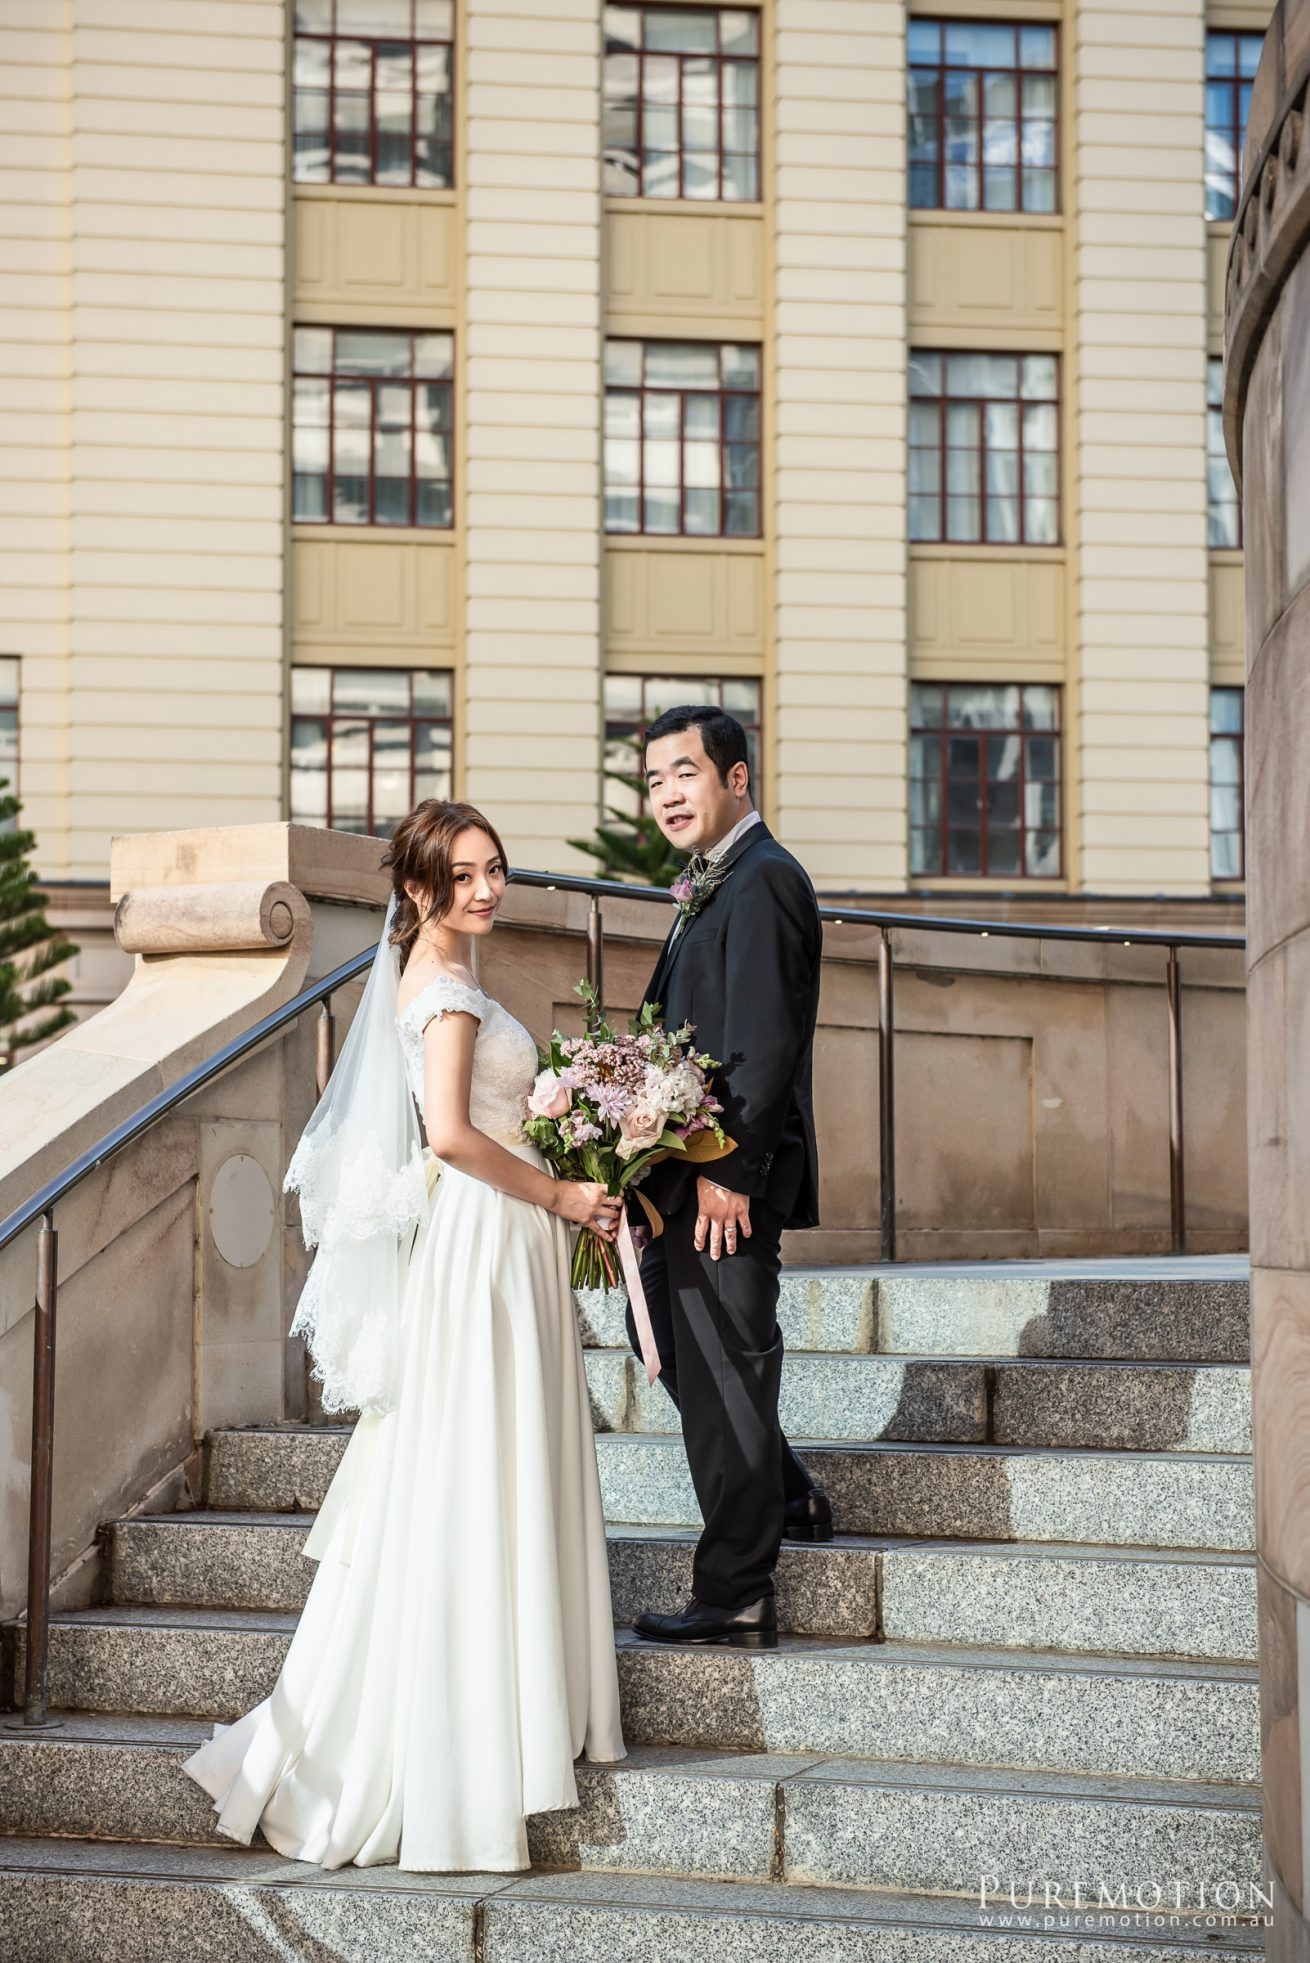 190309 Puremotion Wedding Photography Brisbane Alex Huang AngelaSunny_Edited-0104